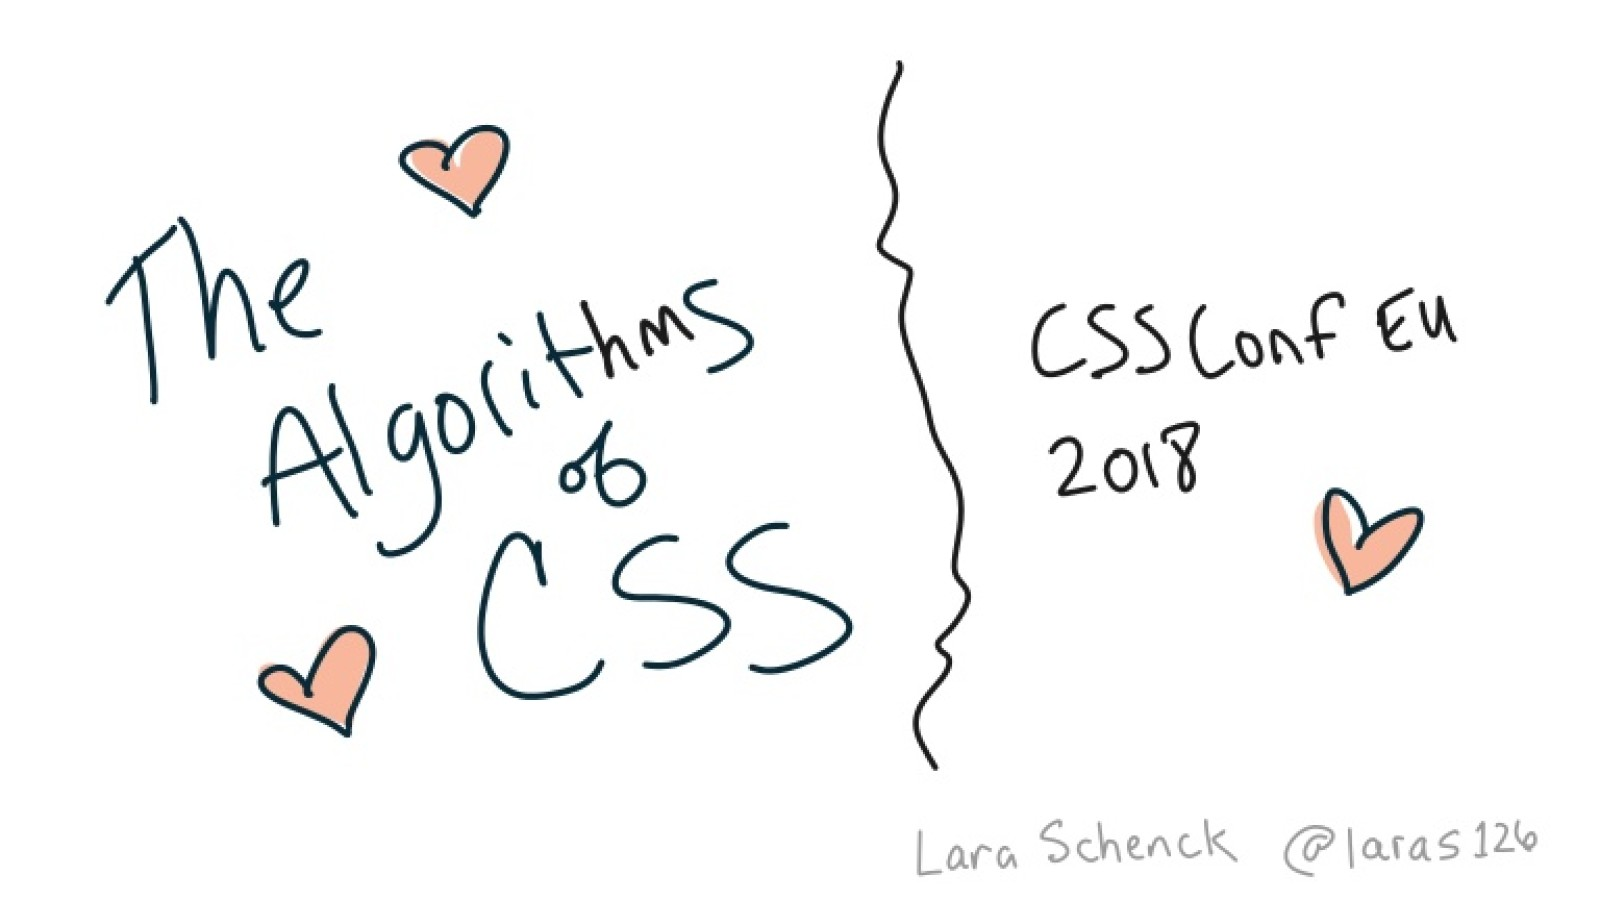 The Algorithms of CSS v1.0.0